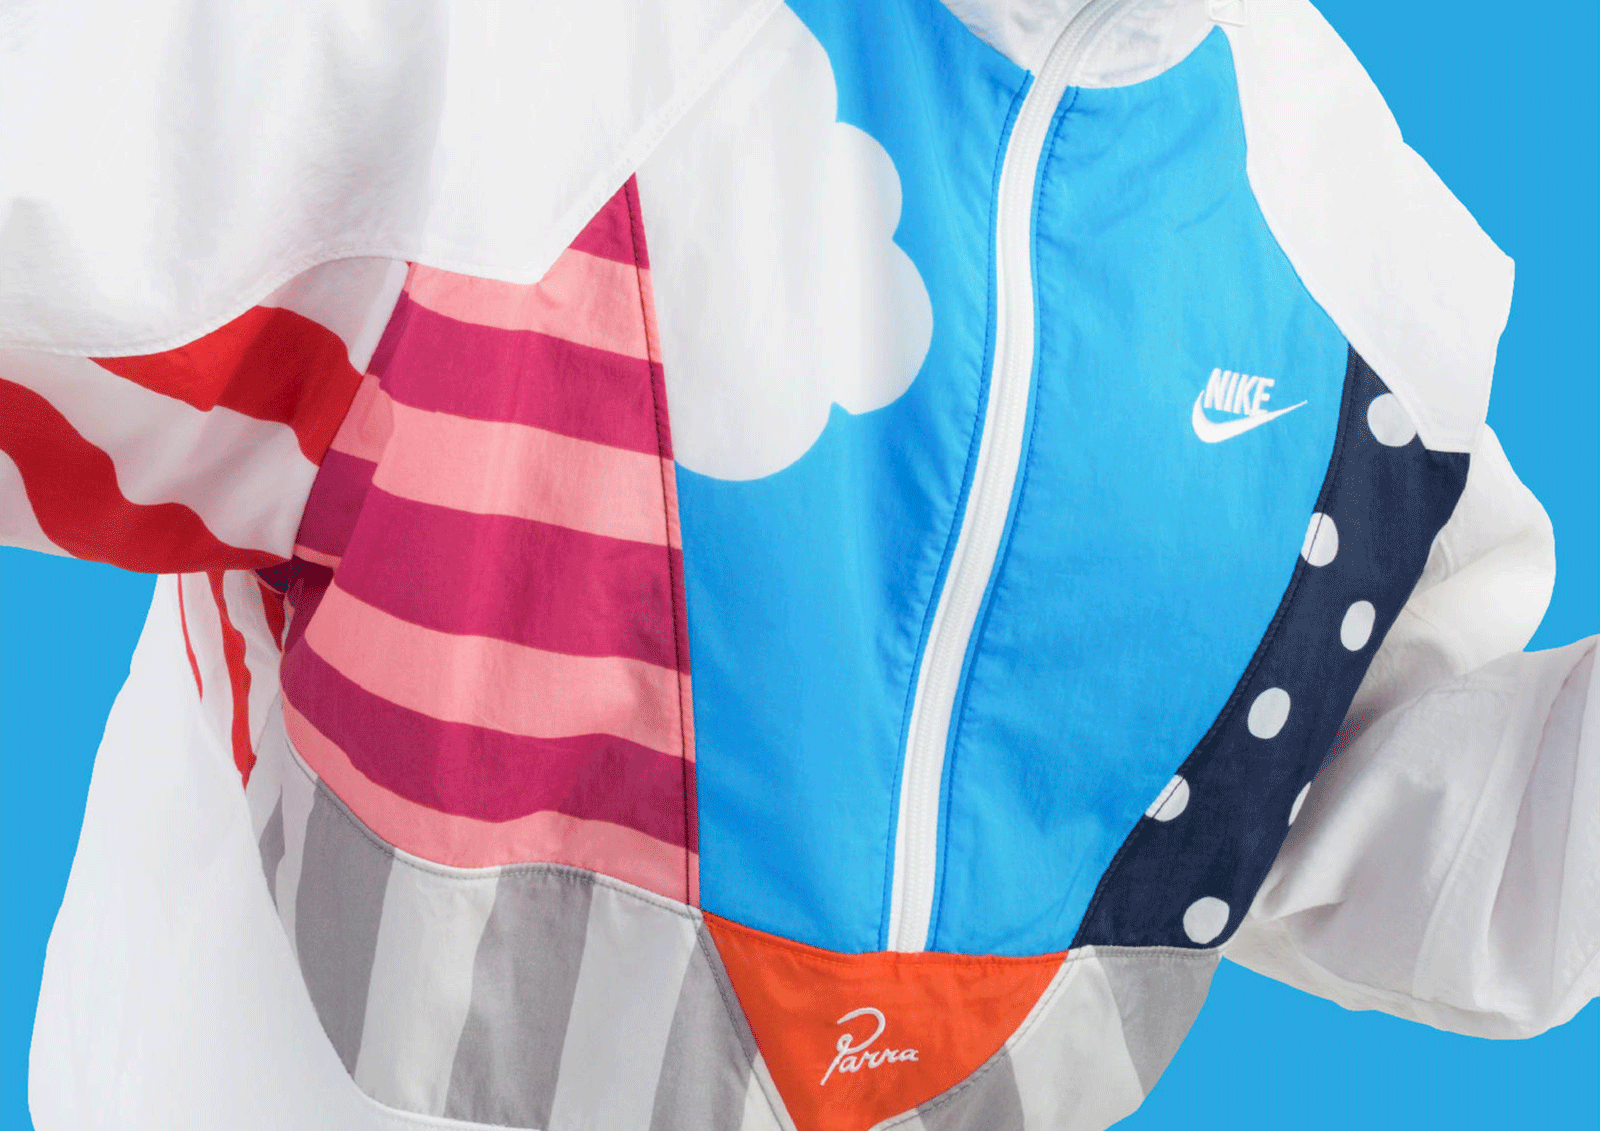 Nike Air Max 1 x Parra Windbreaker